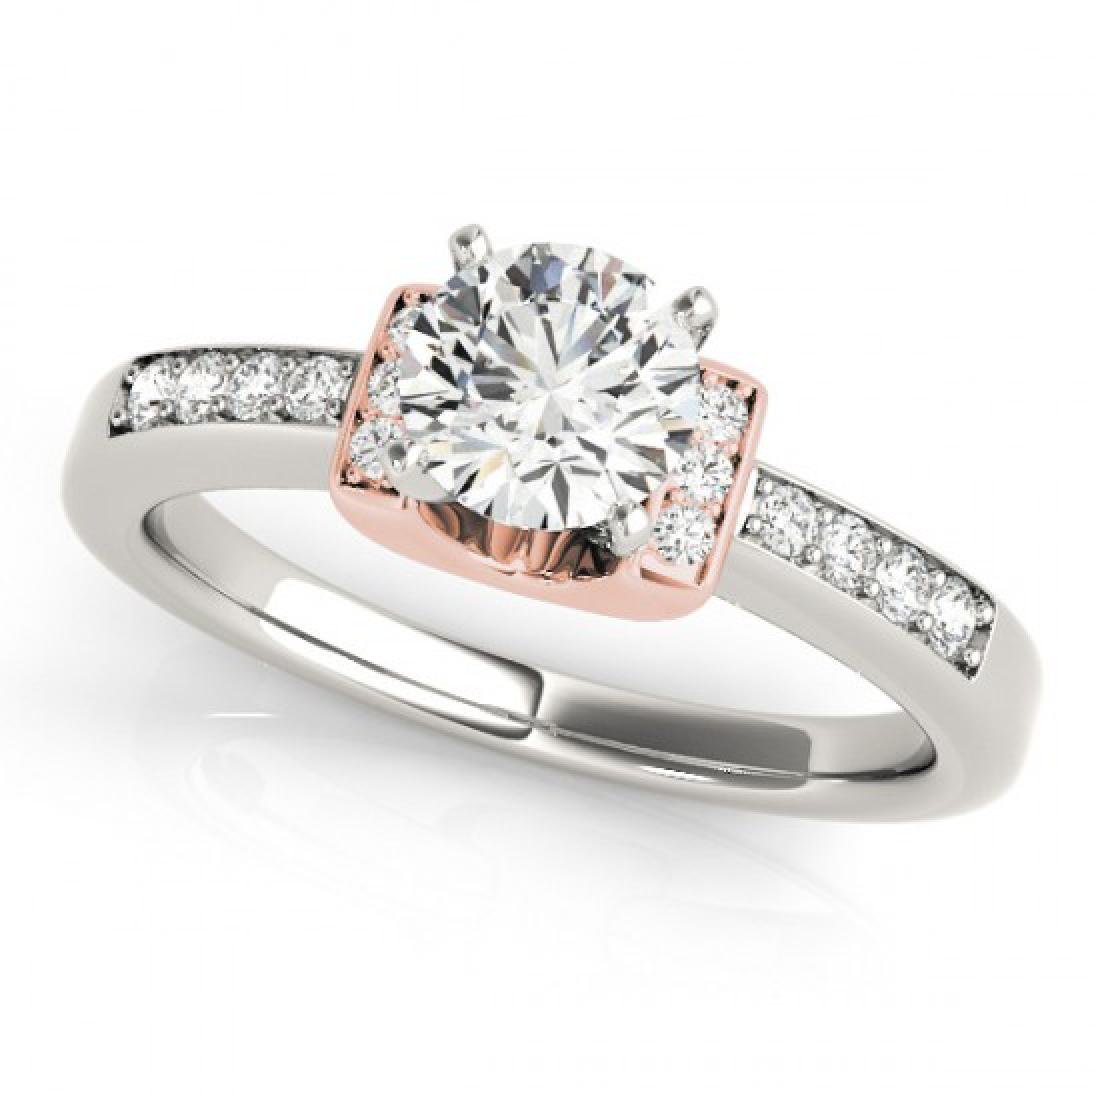 0.61 CTW Certified VS/SI Diamond Solitaire Ring 14K